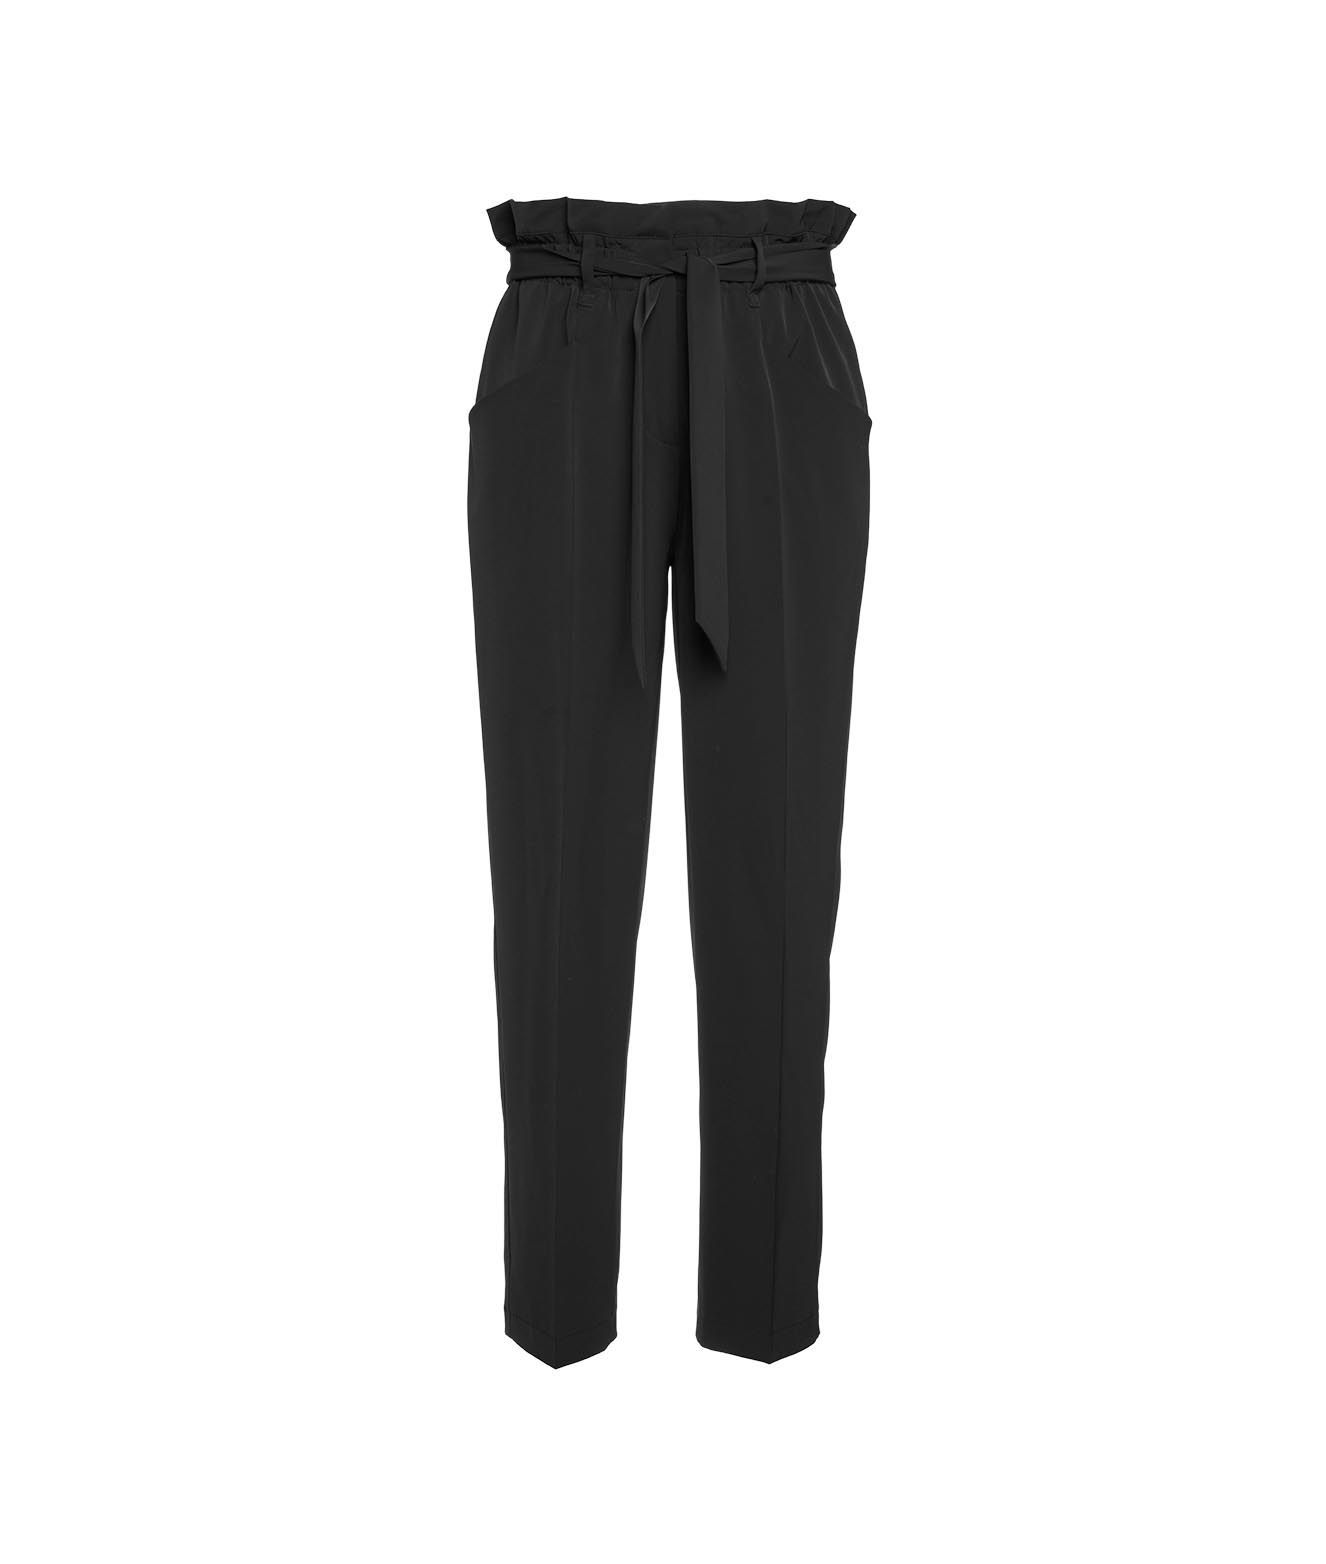 Cambio CAMBIO CLOTHING WOMEN'S 604502570011099 BLACK OTHER MATERIALS PANTS